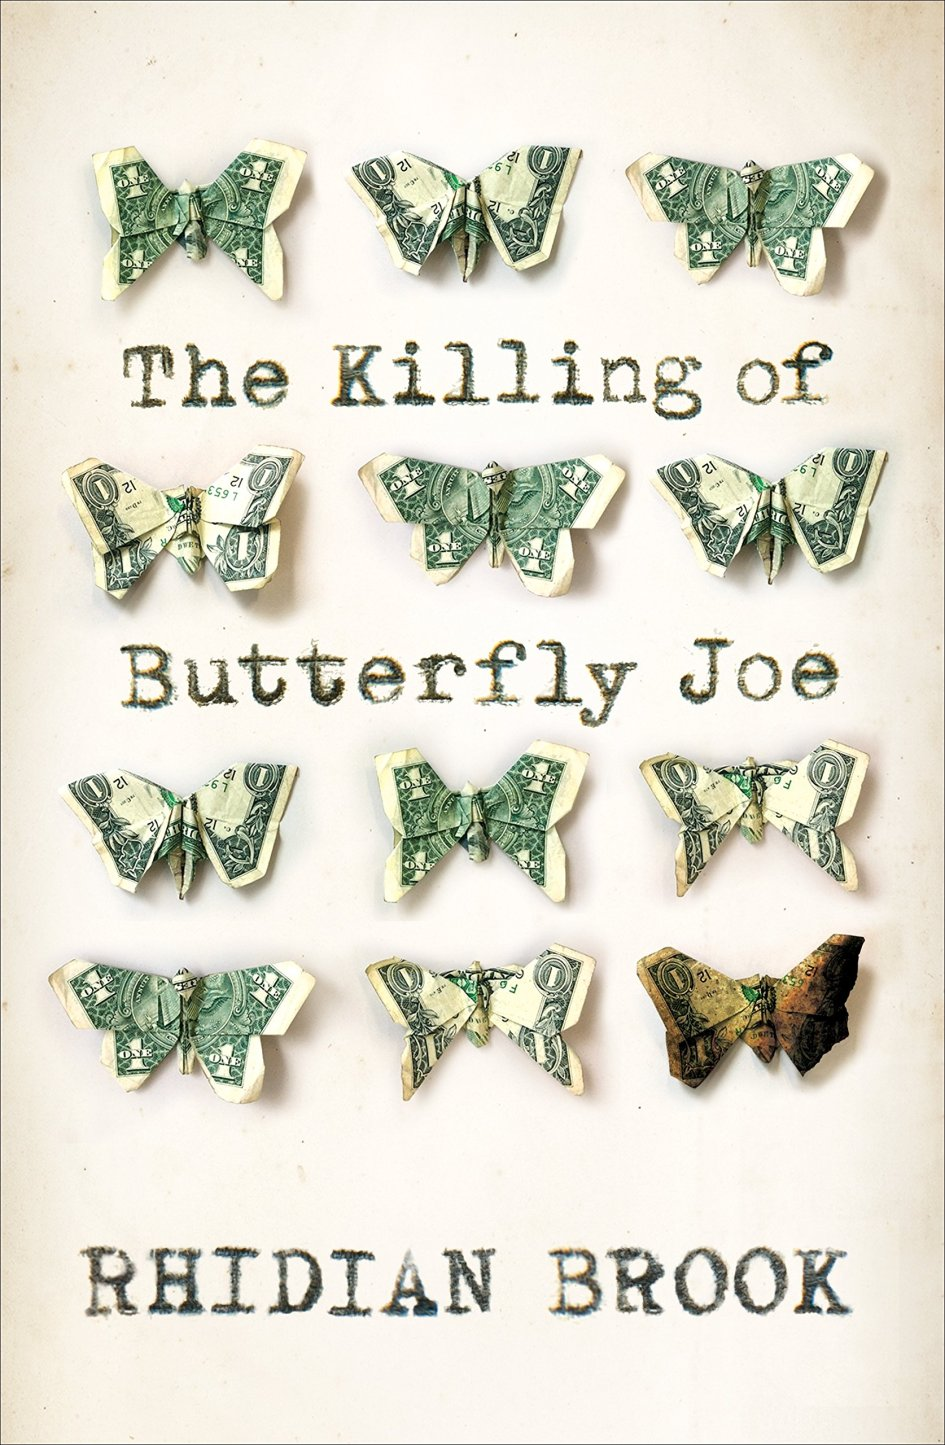 The Killing of Butterfly Joe Rhidian Brook